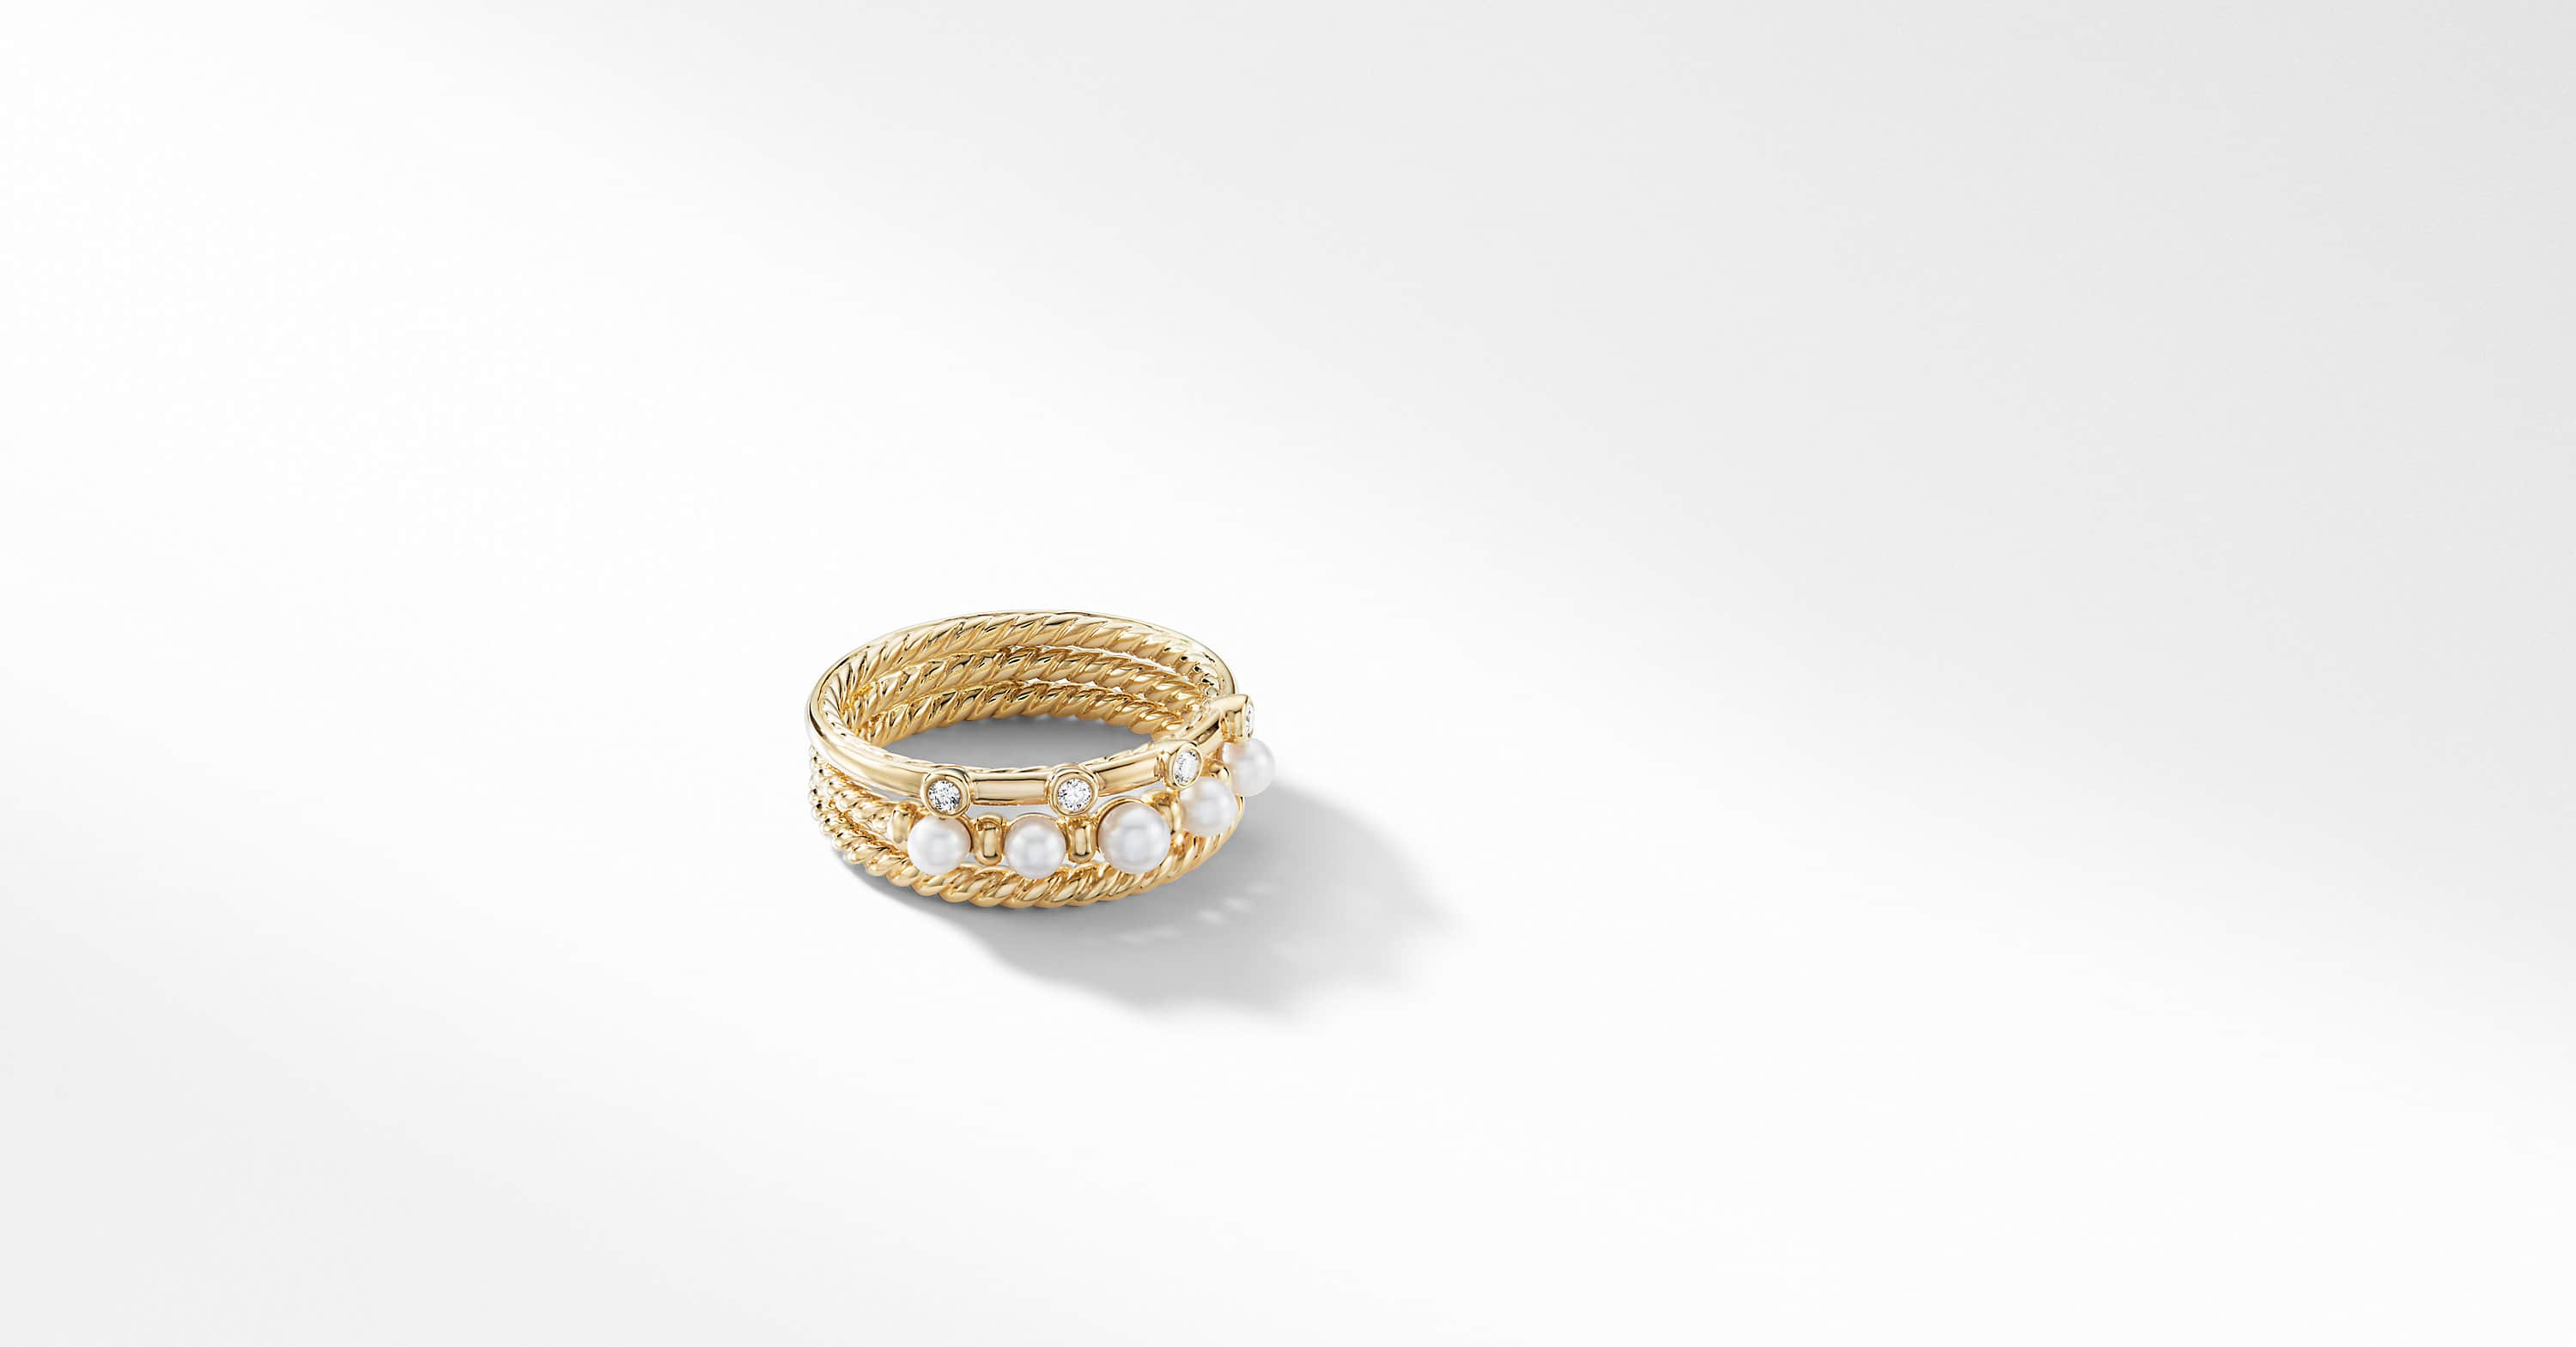 Petite Perle Narrow Multi Row Ring with Pearls and Diamonds in 18K Gold